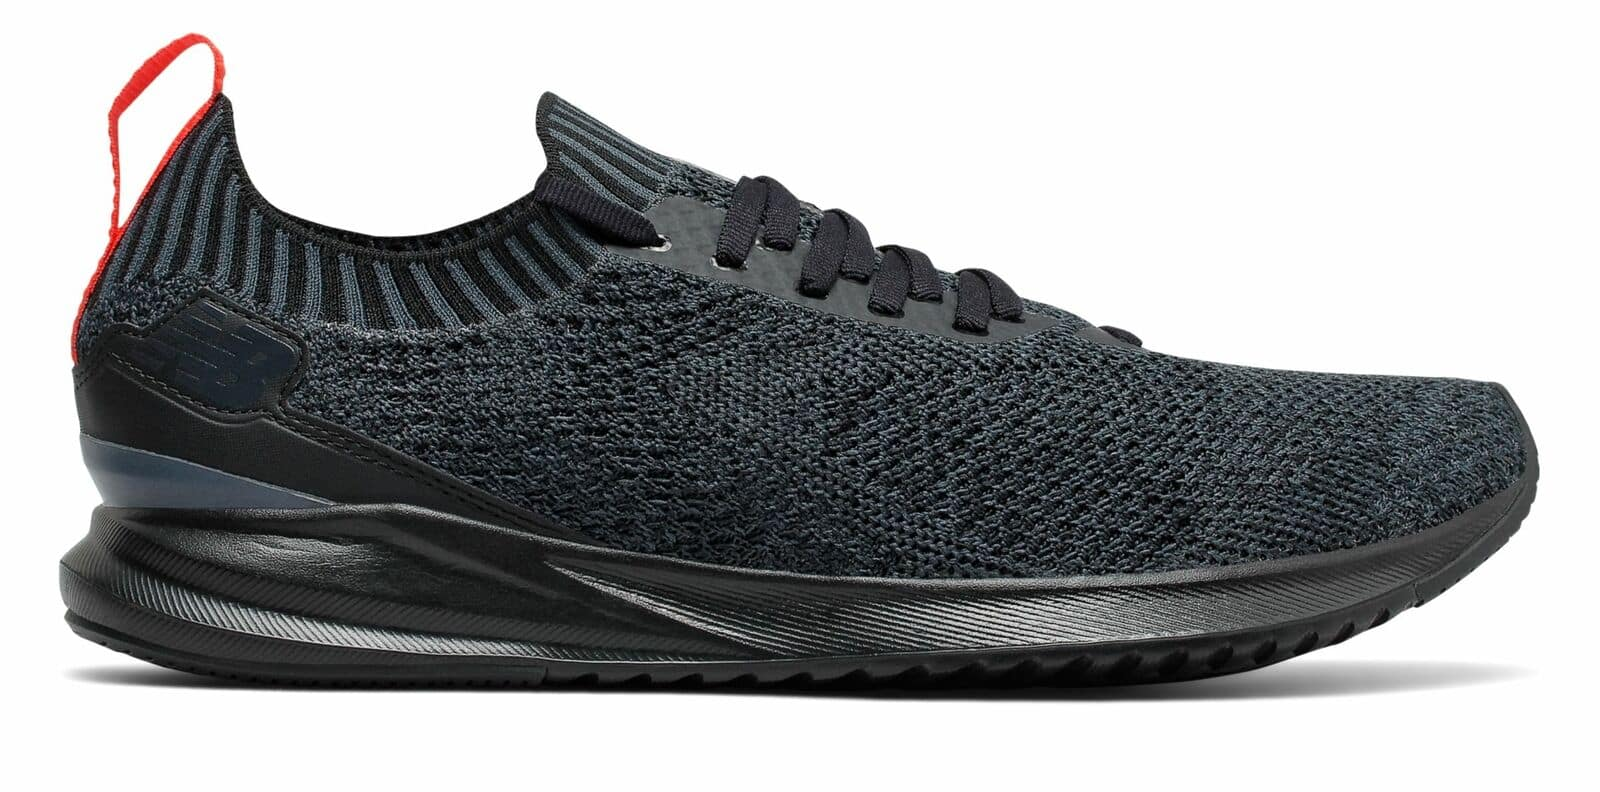 New Balance Men's Vizo Pro Run Knit Shoes Black $32.81 + Free shipping